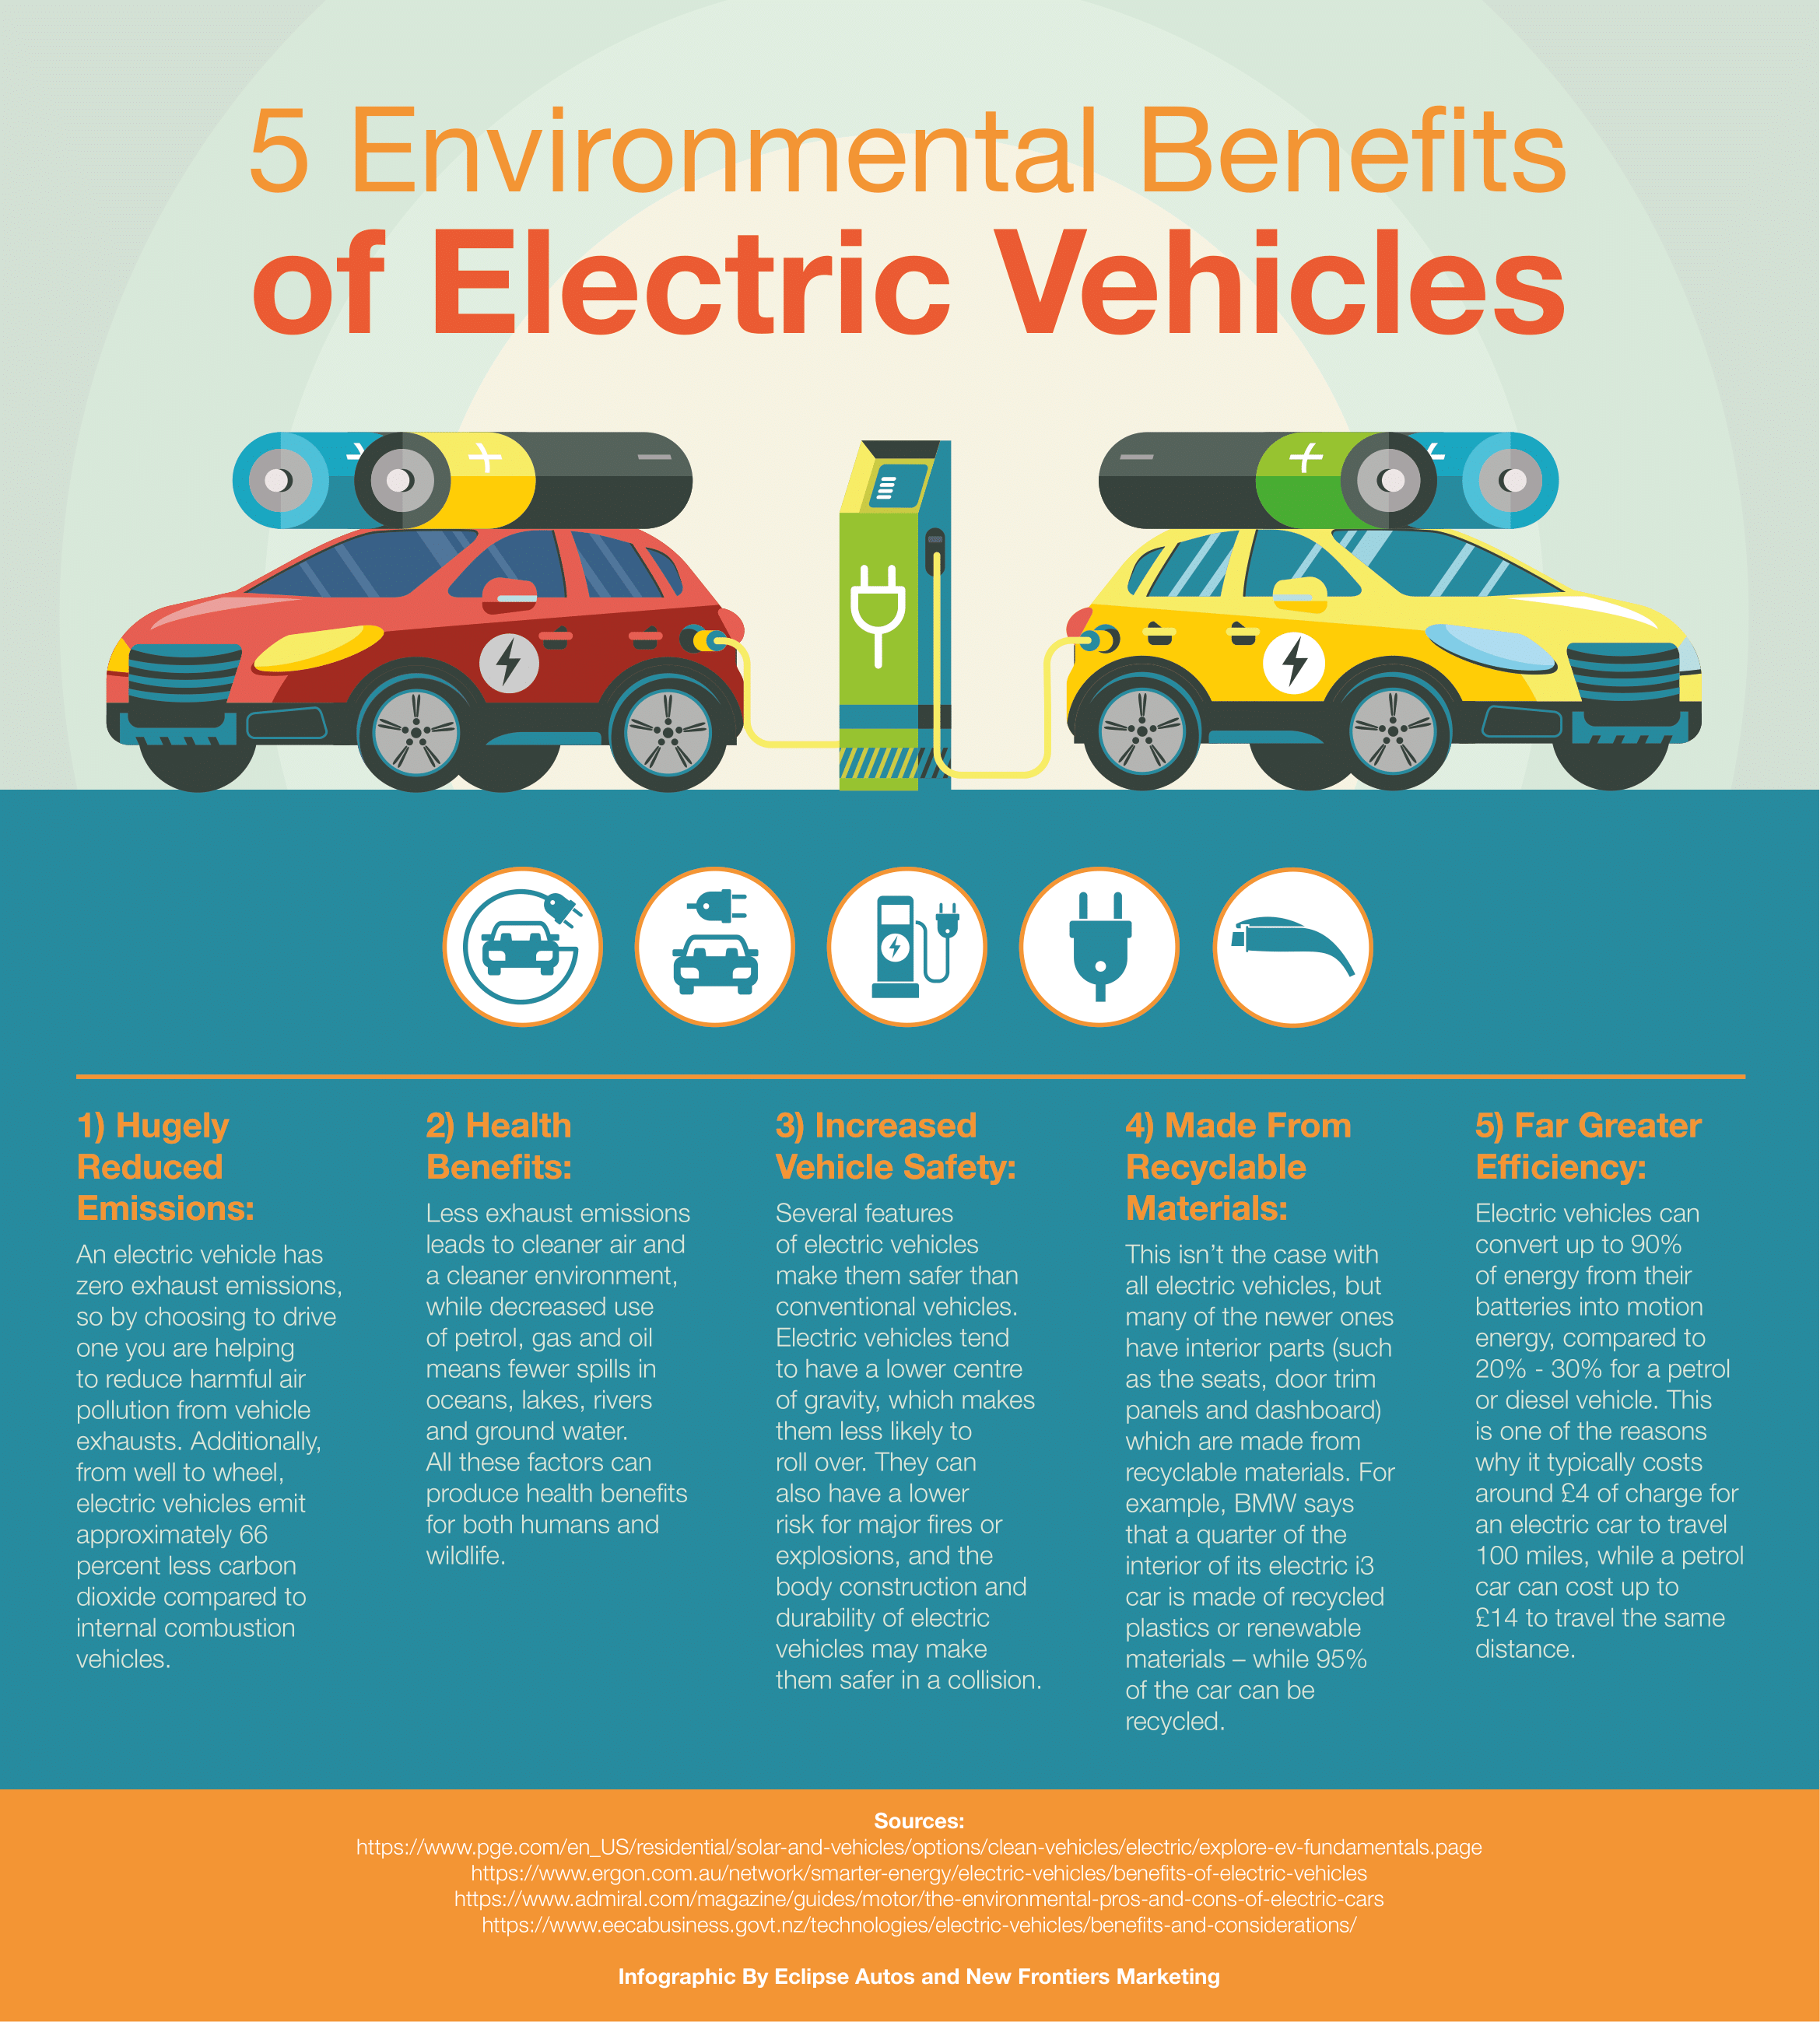 5 Reasons An Electric Car Will Save Your Environment A Great Deal - Infographic